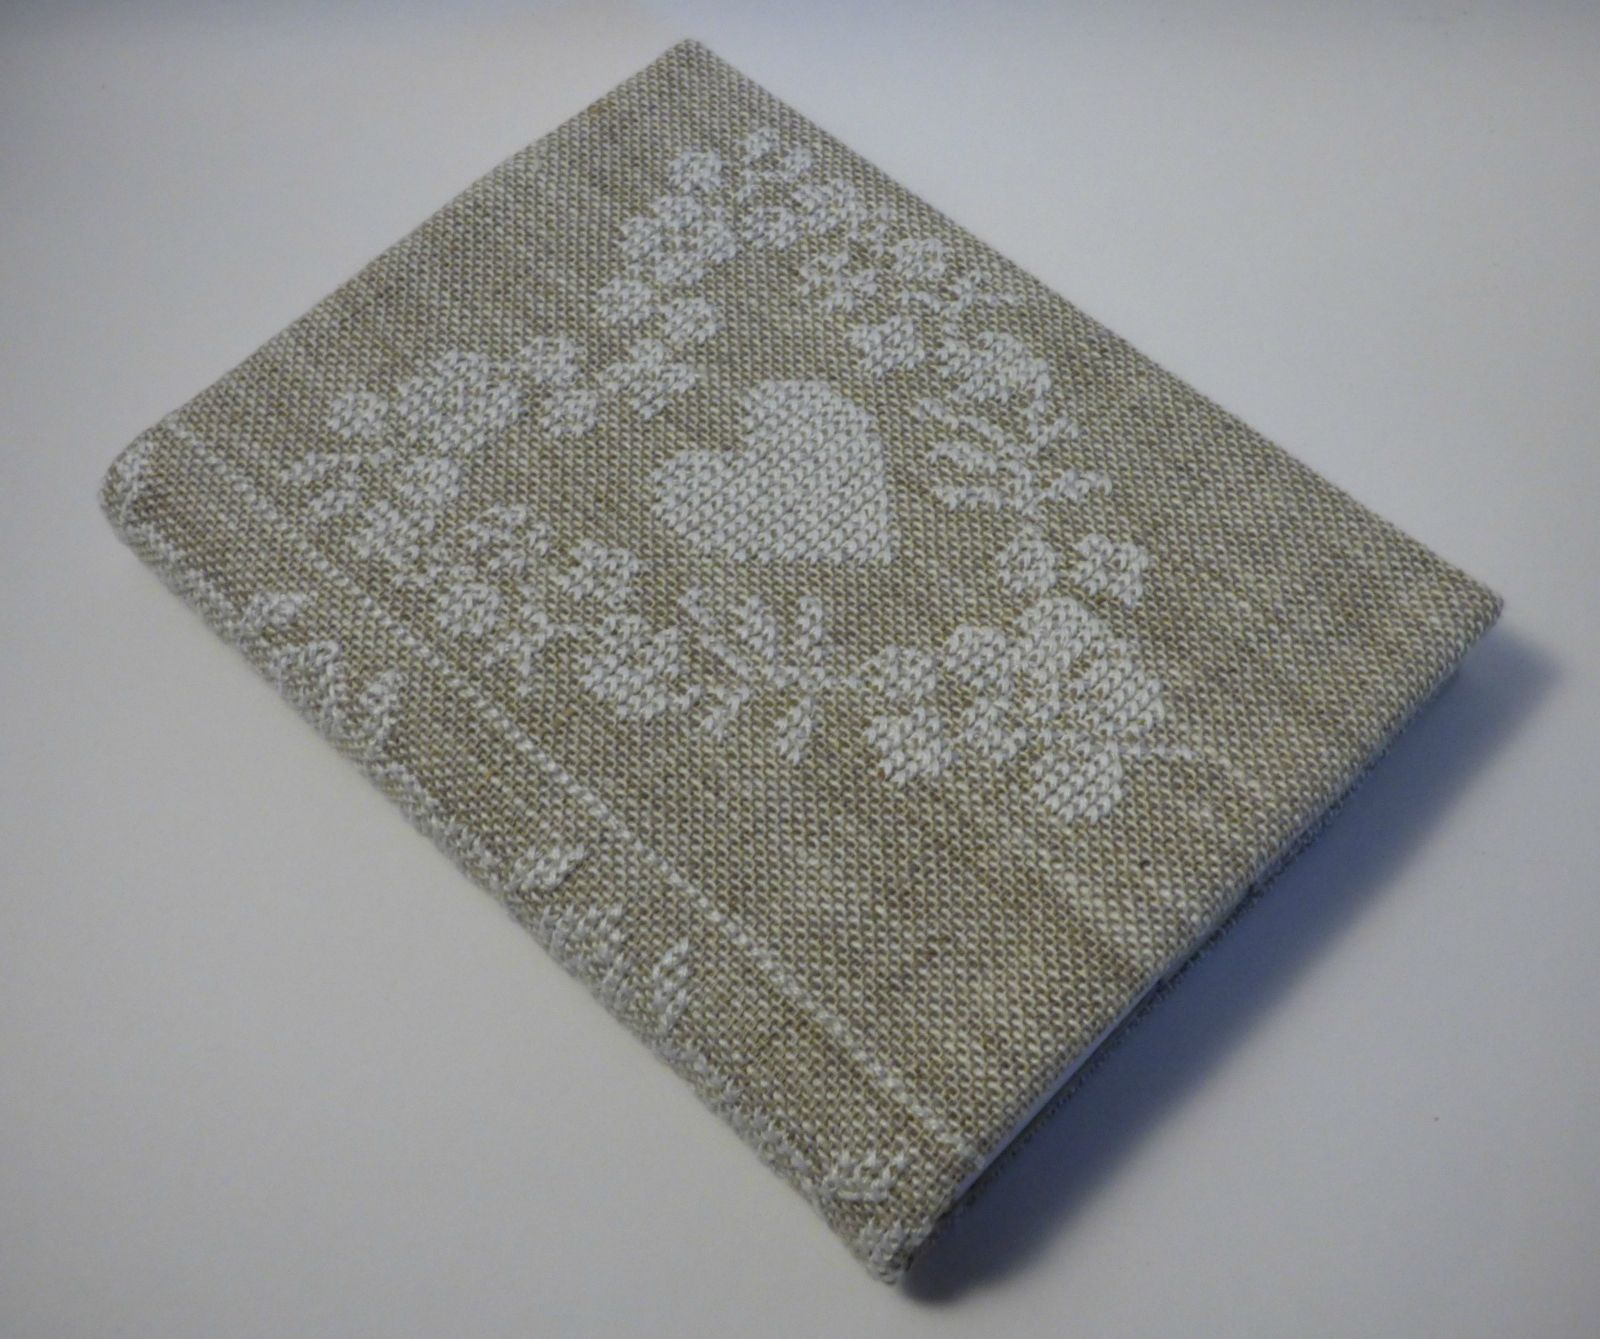 Cross Stitch A6 Journal & Cover - White Floral Heart | Felt